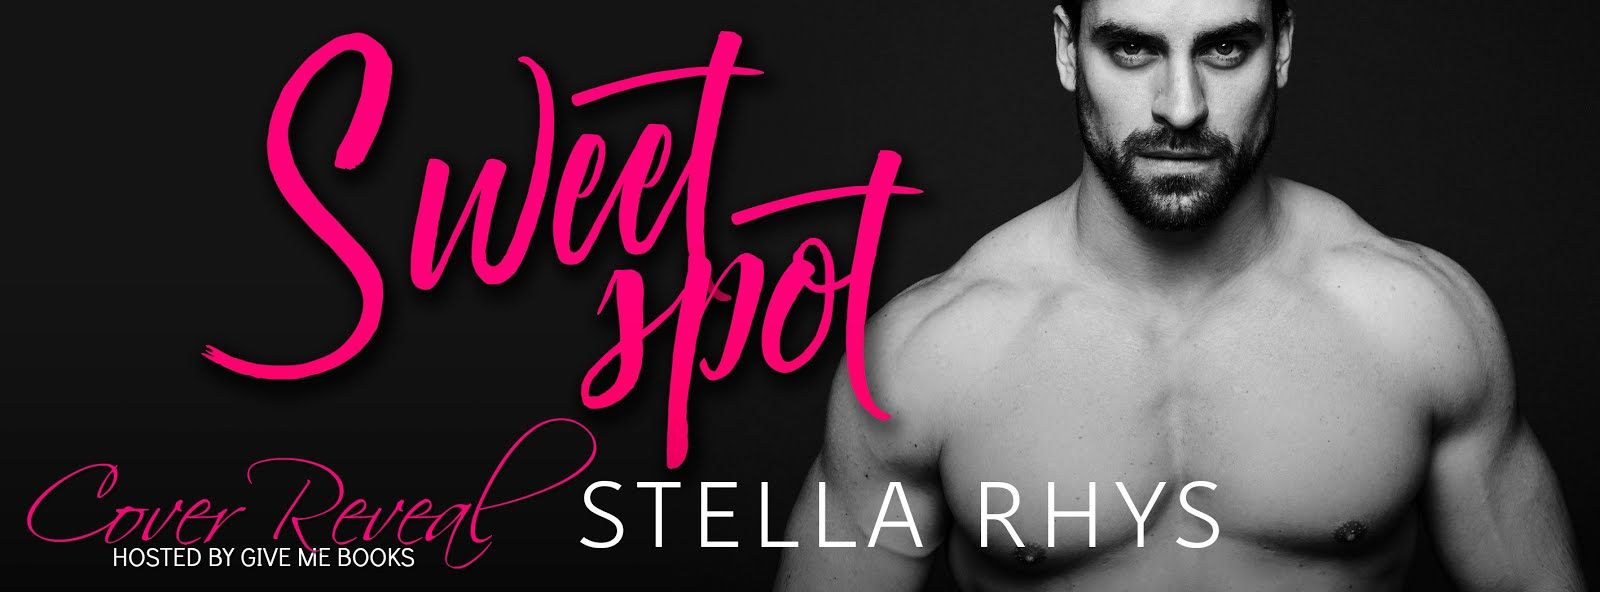 Cover Reveal Sweet Spot